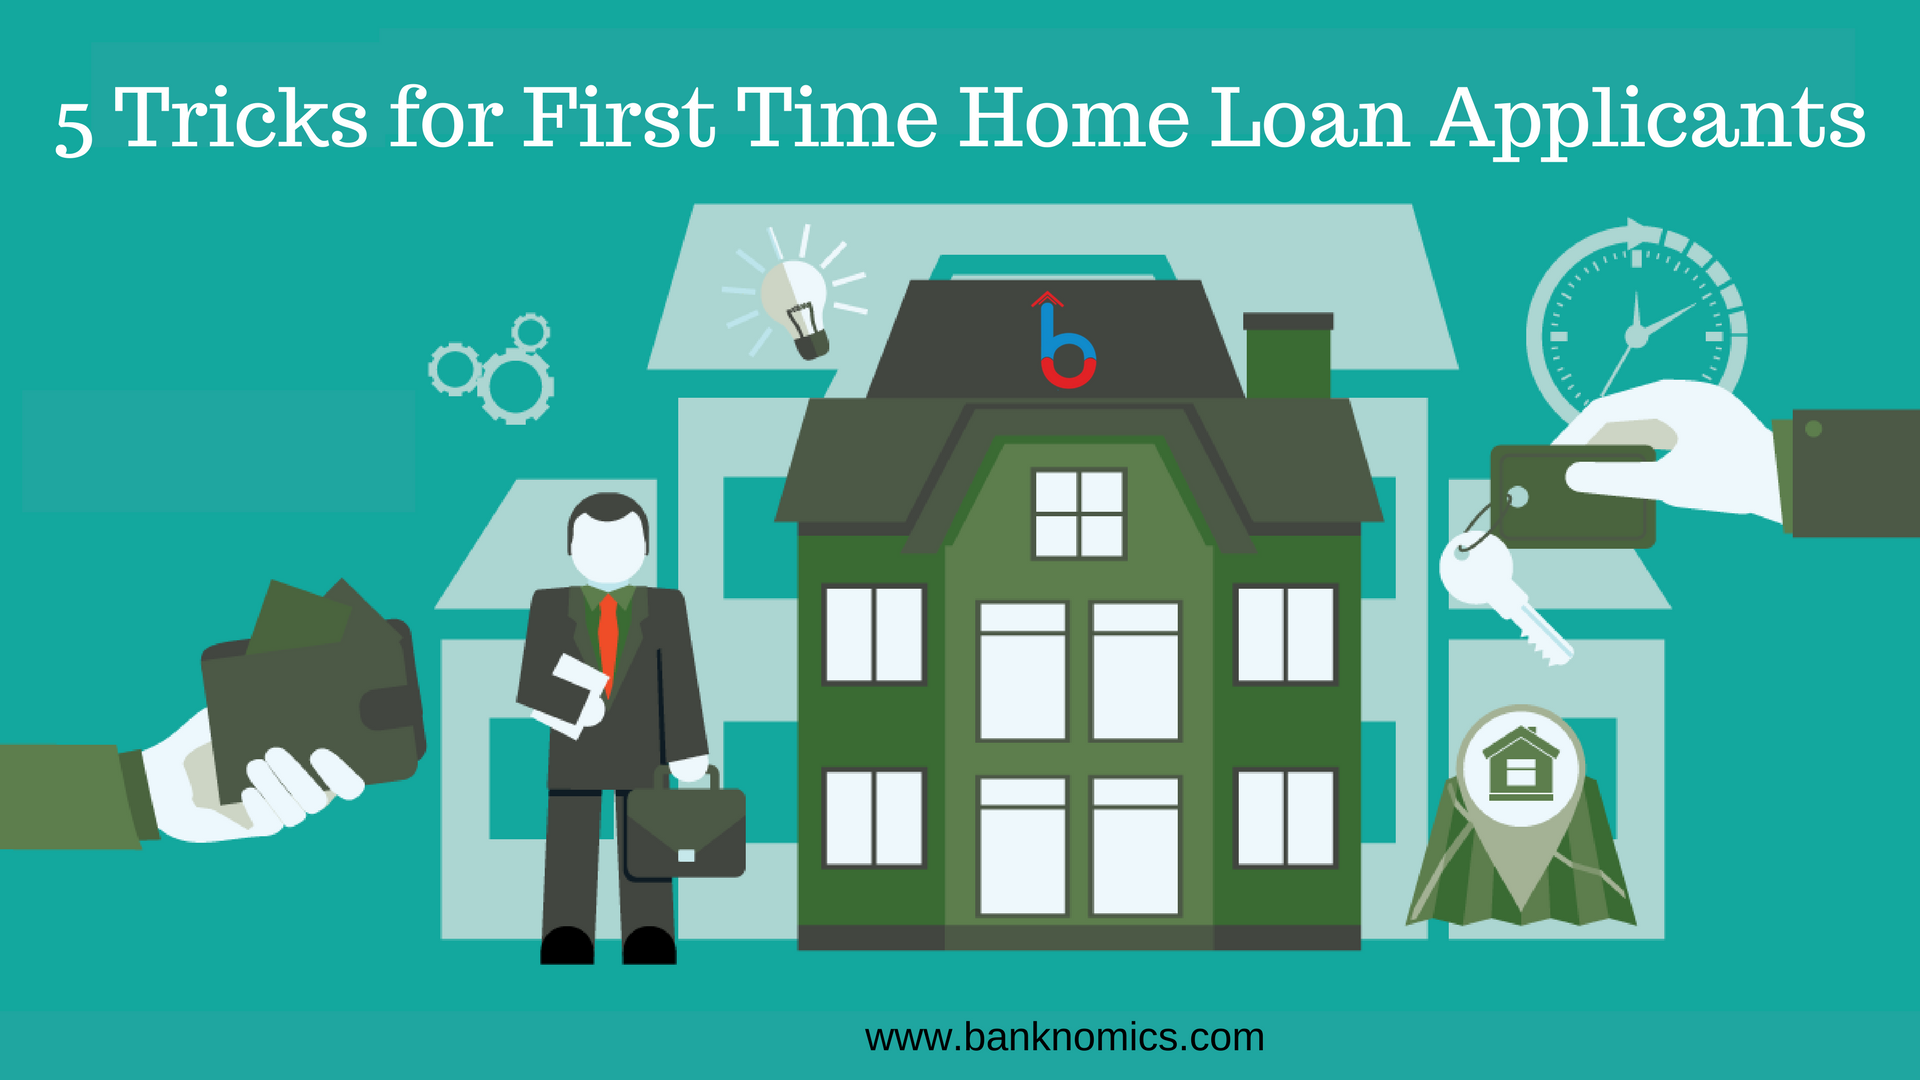 first time home buyers often makes some mistakes while going to